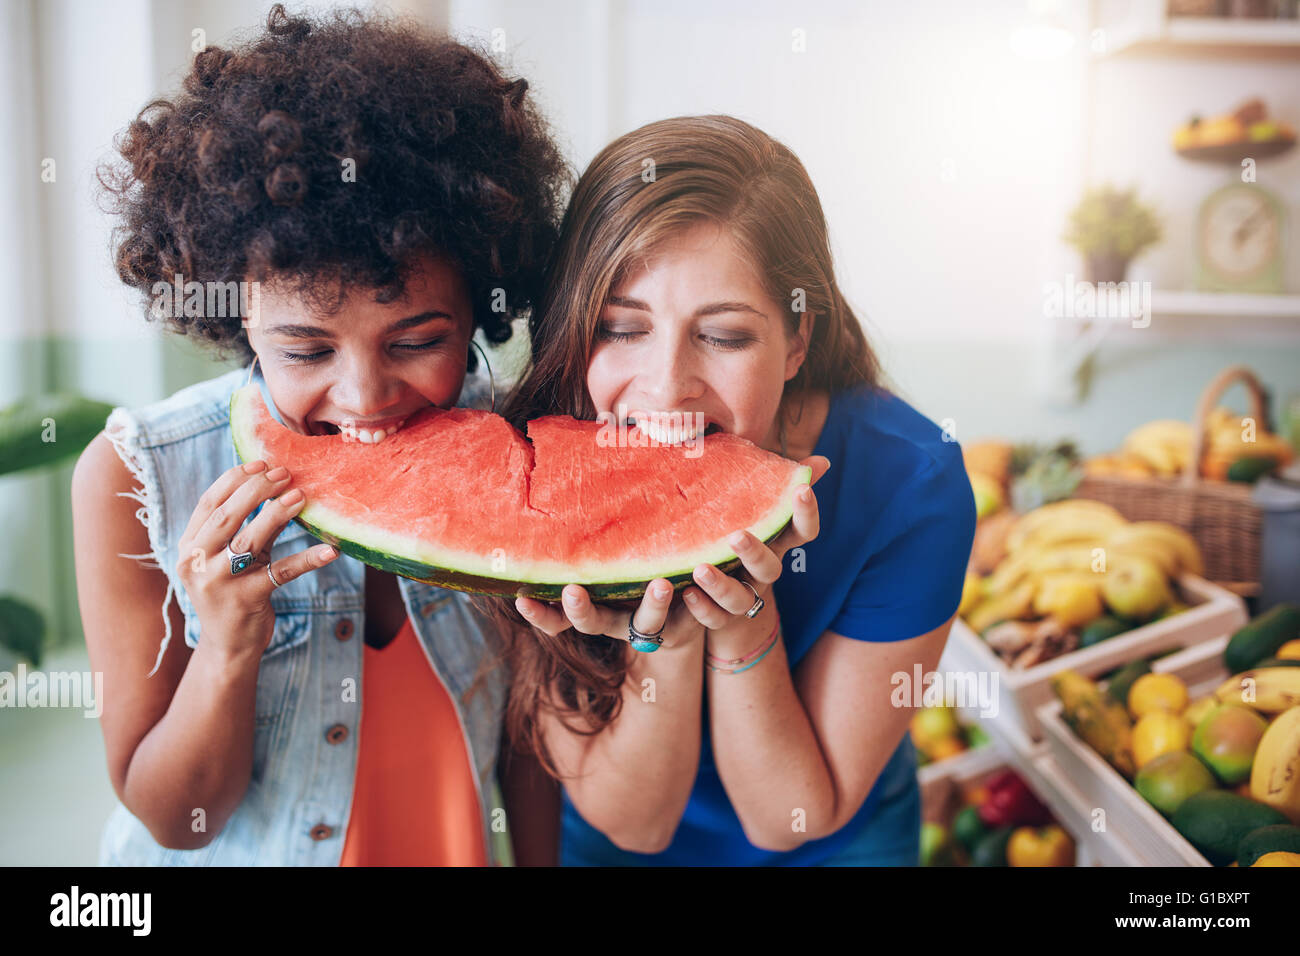 Two young woman eating watermelon and having fun. Mixed race female friends together eating a watermelon slice. - Stock Image